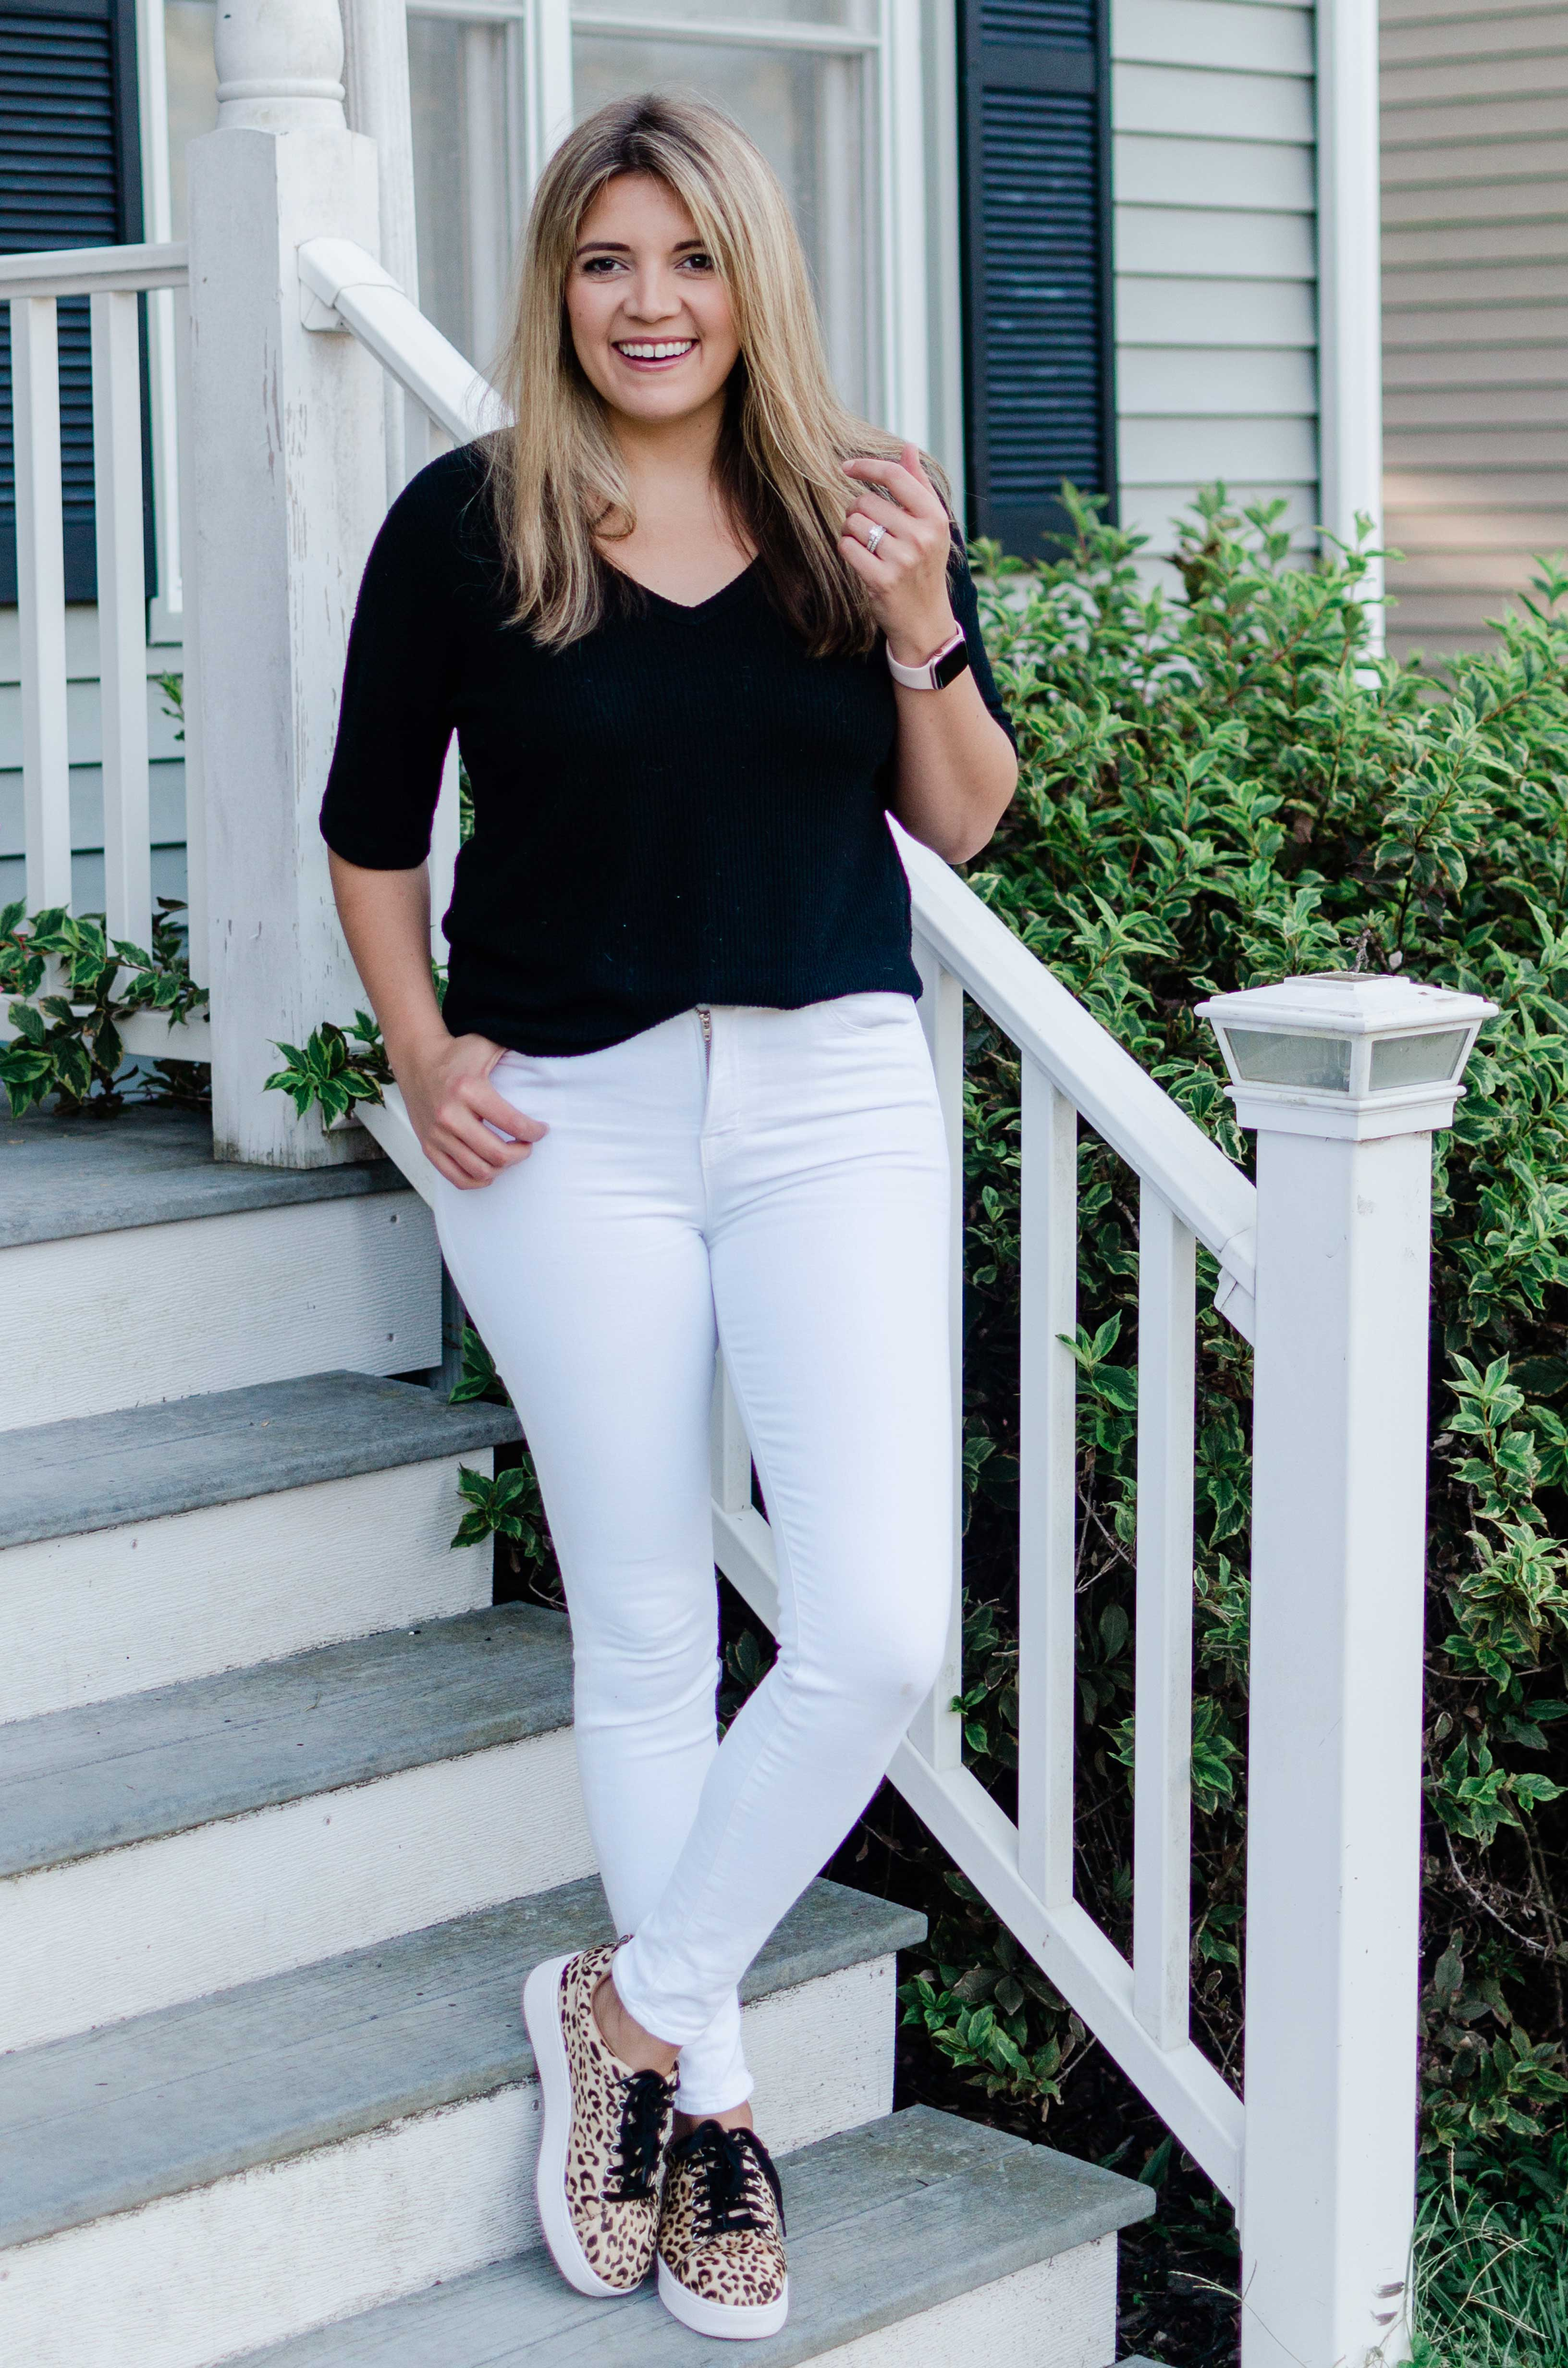 Virginia blogger, Lauren Dix, shares five white jeans outfits for fall with tips to achieve the look with items already in your closet!